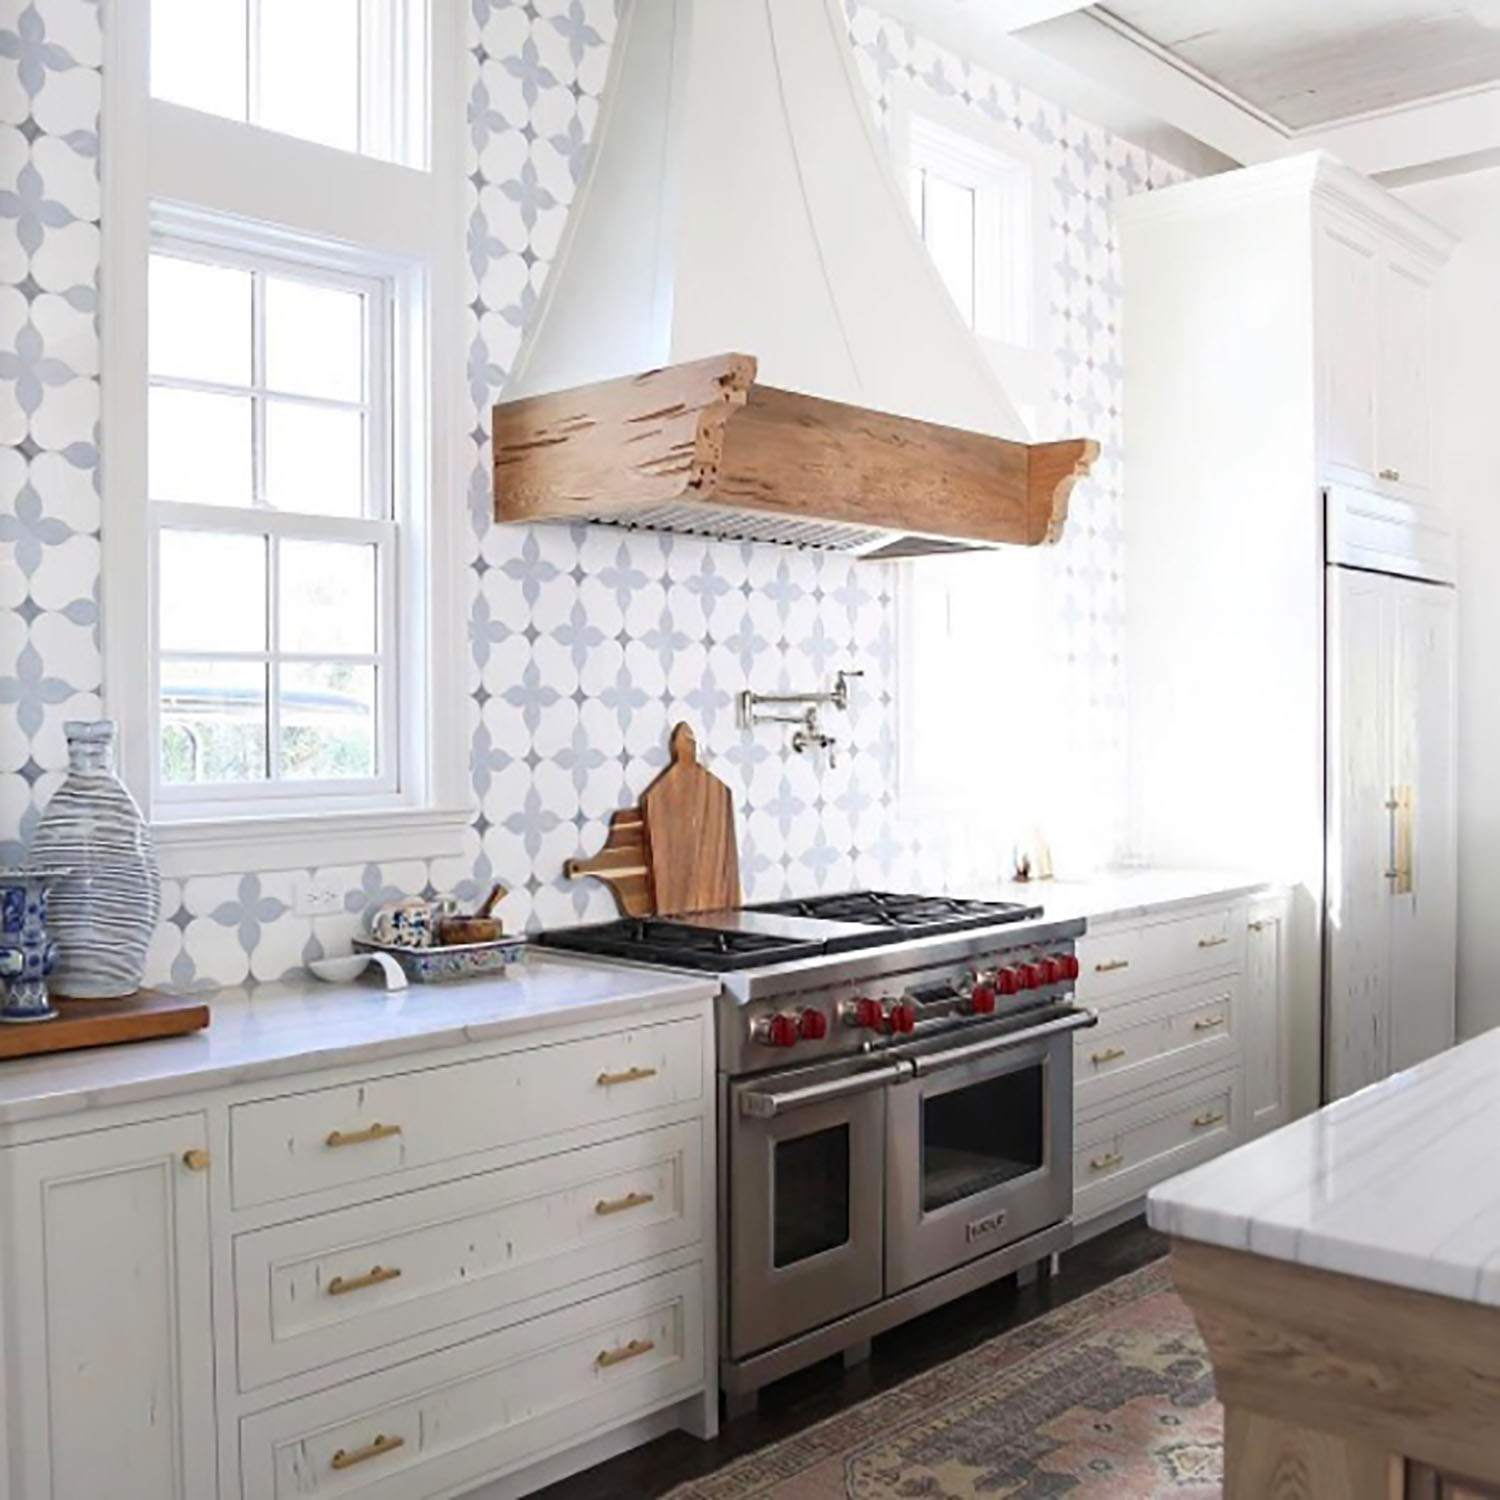 - 20 Unique Kitchen Backsplashes That Aren't Subway Tile